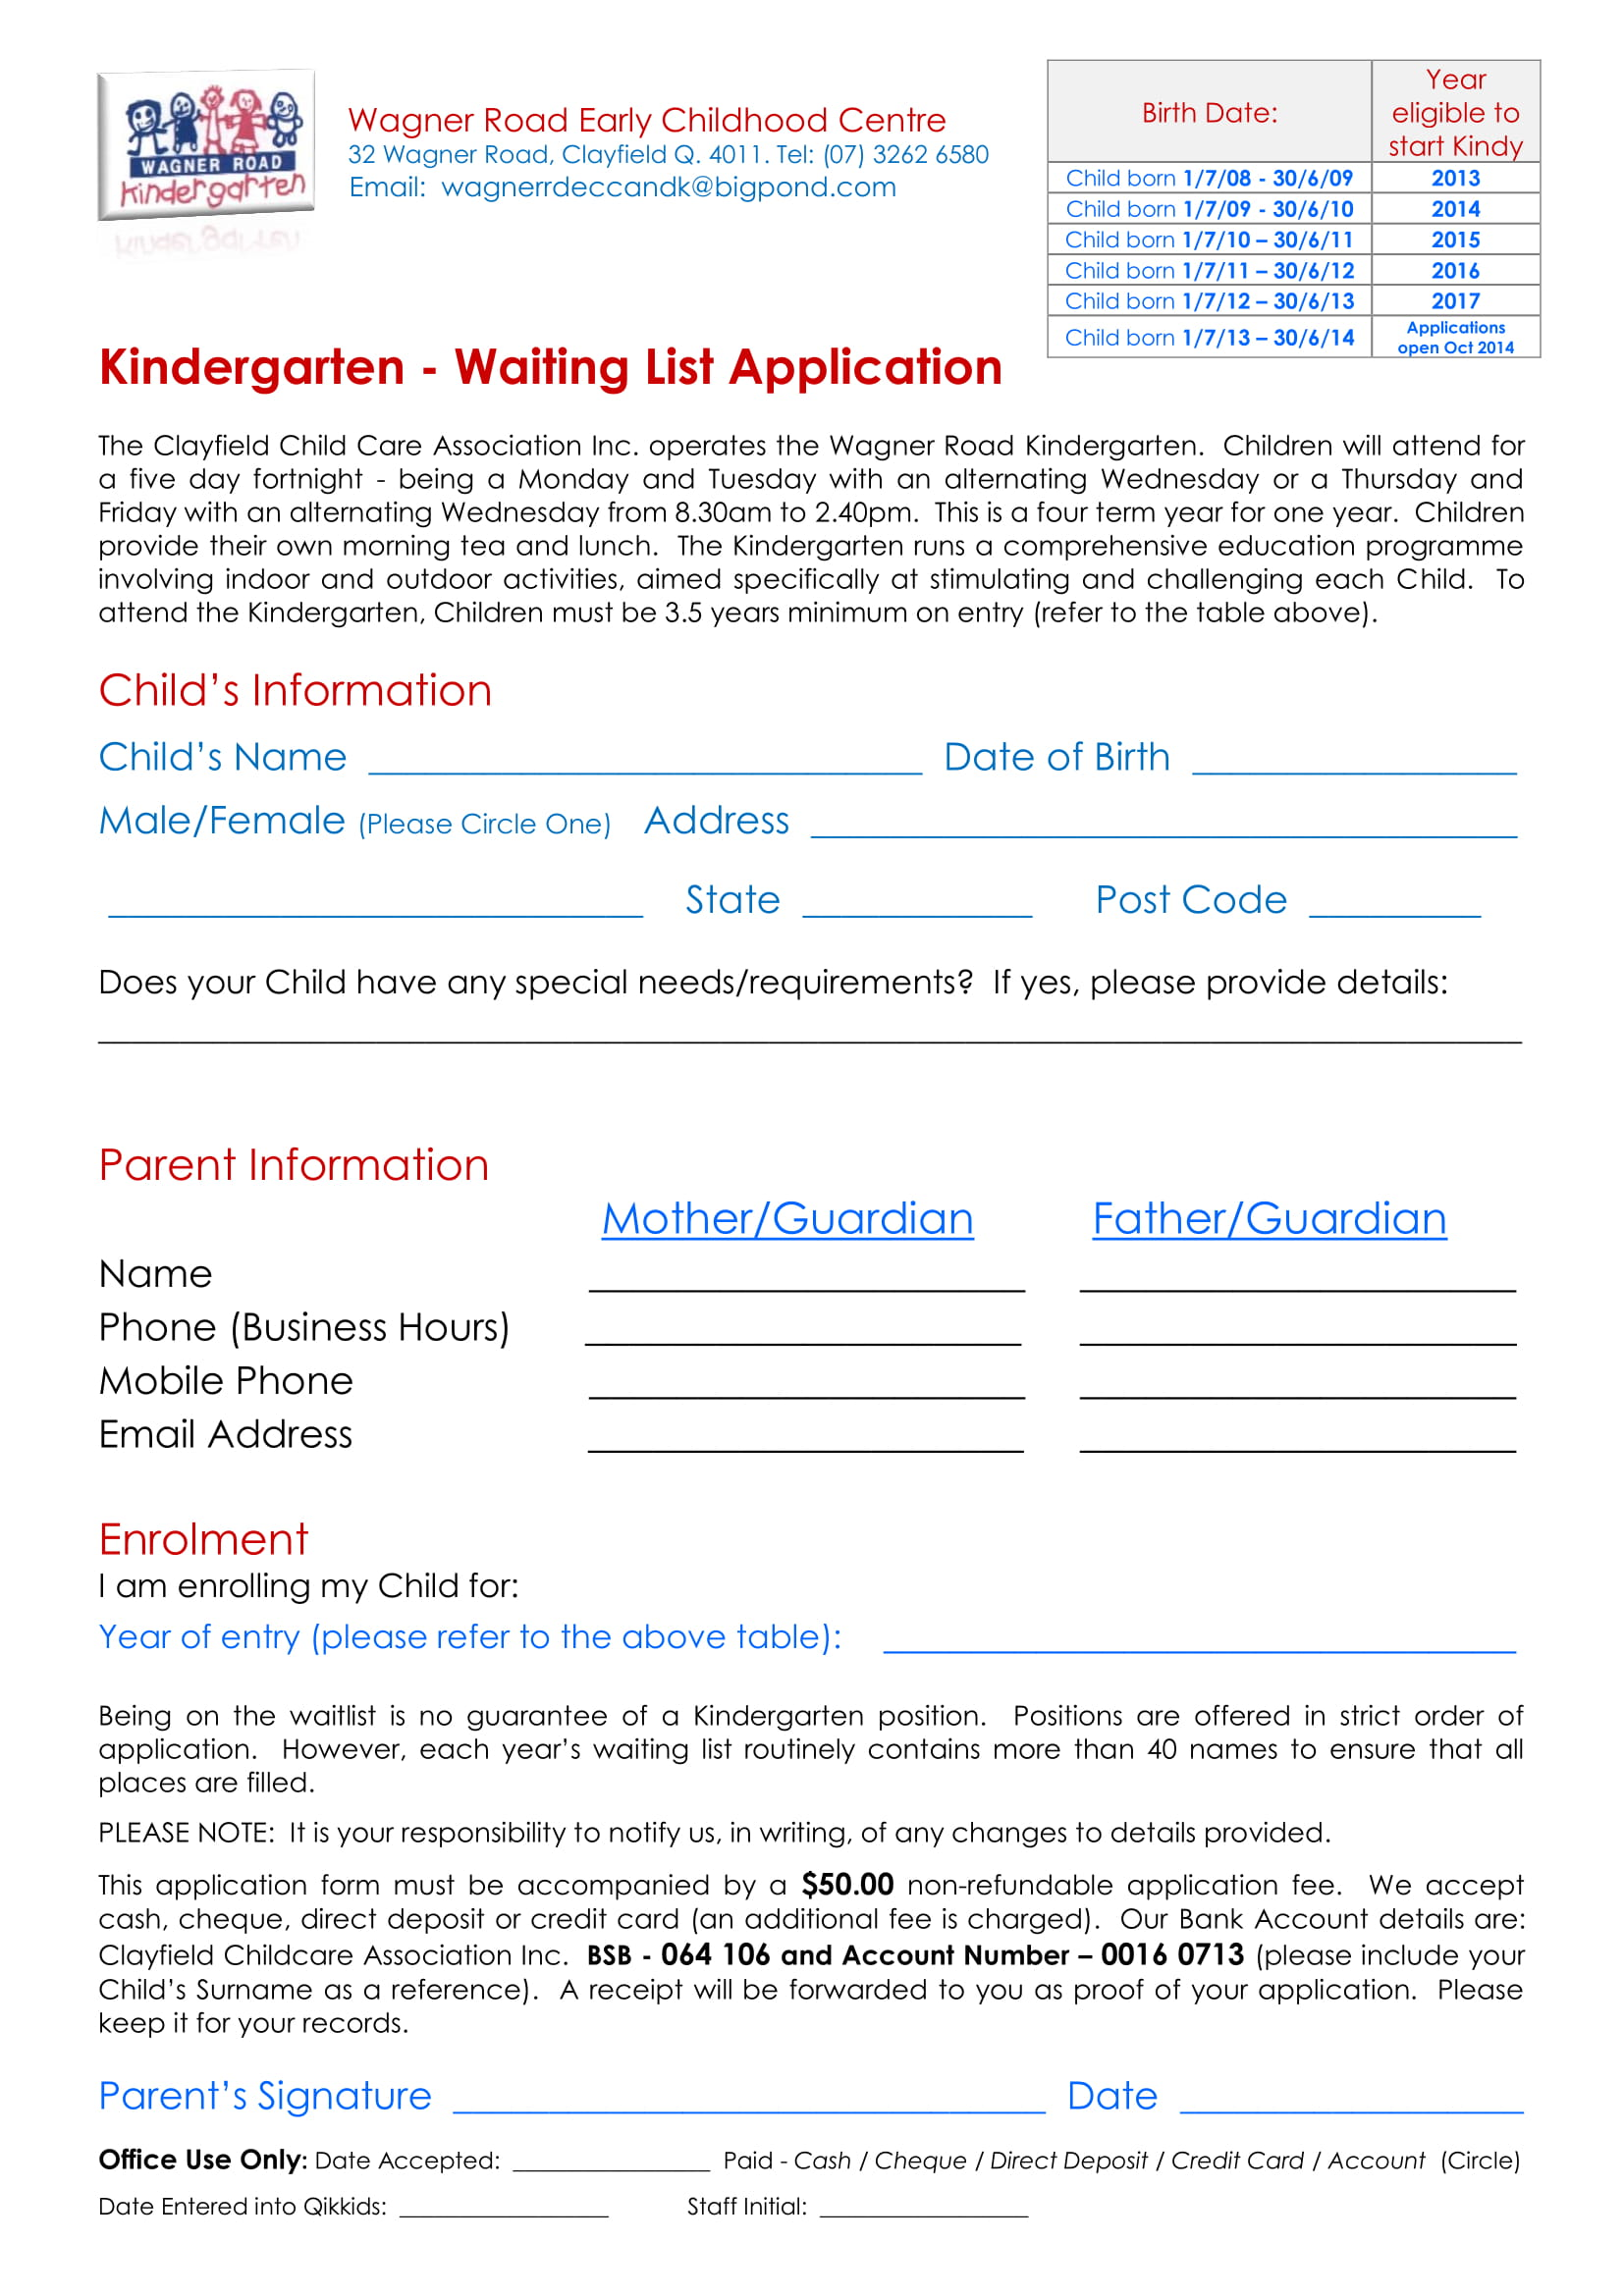 kindergarten waiting list application form 11